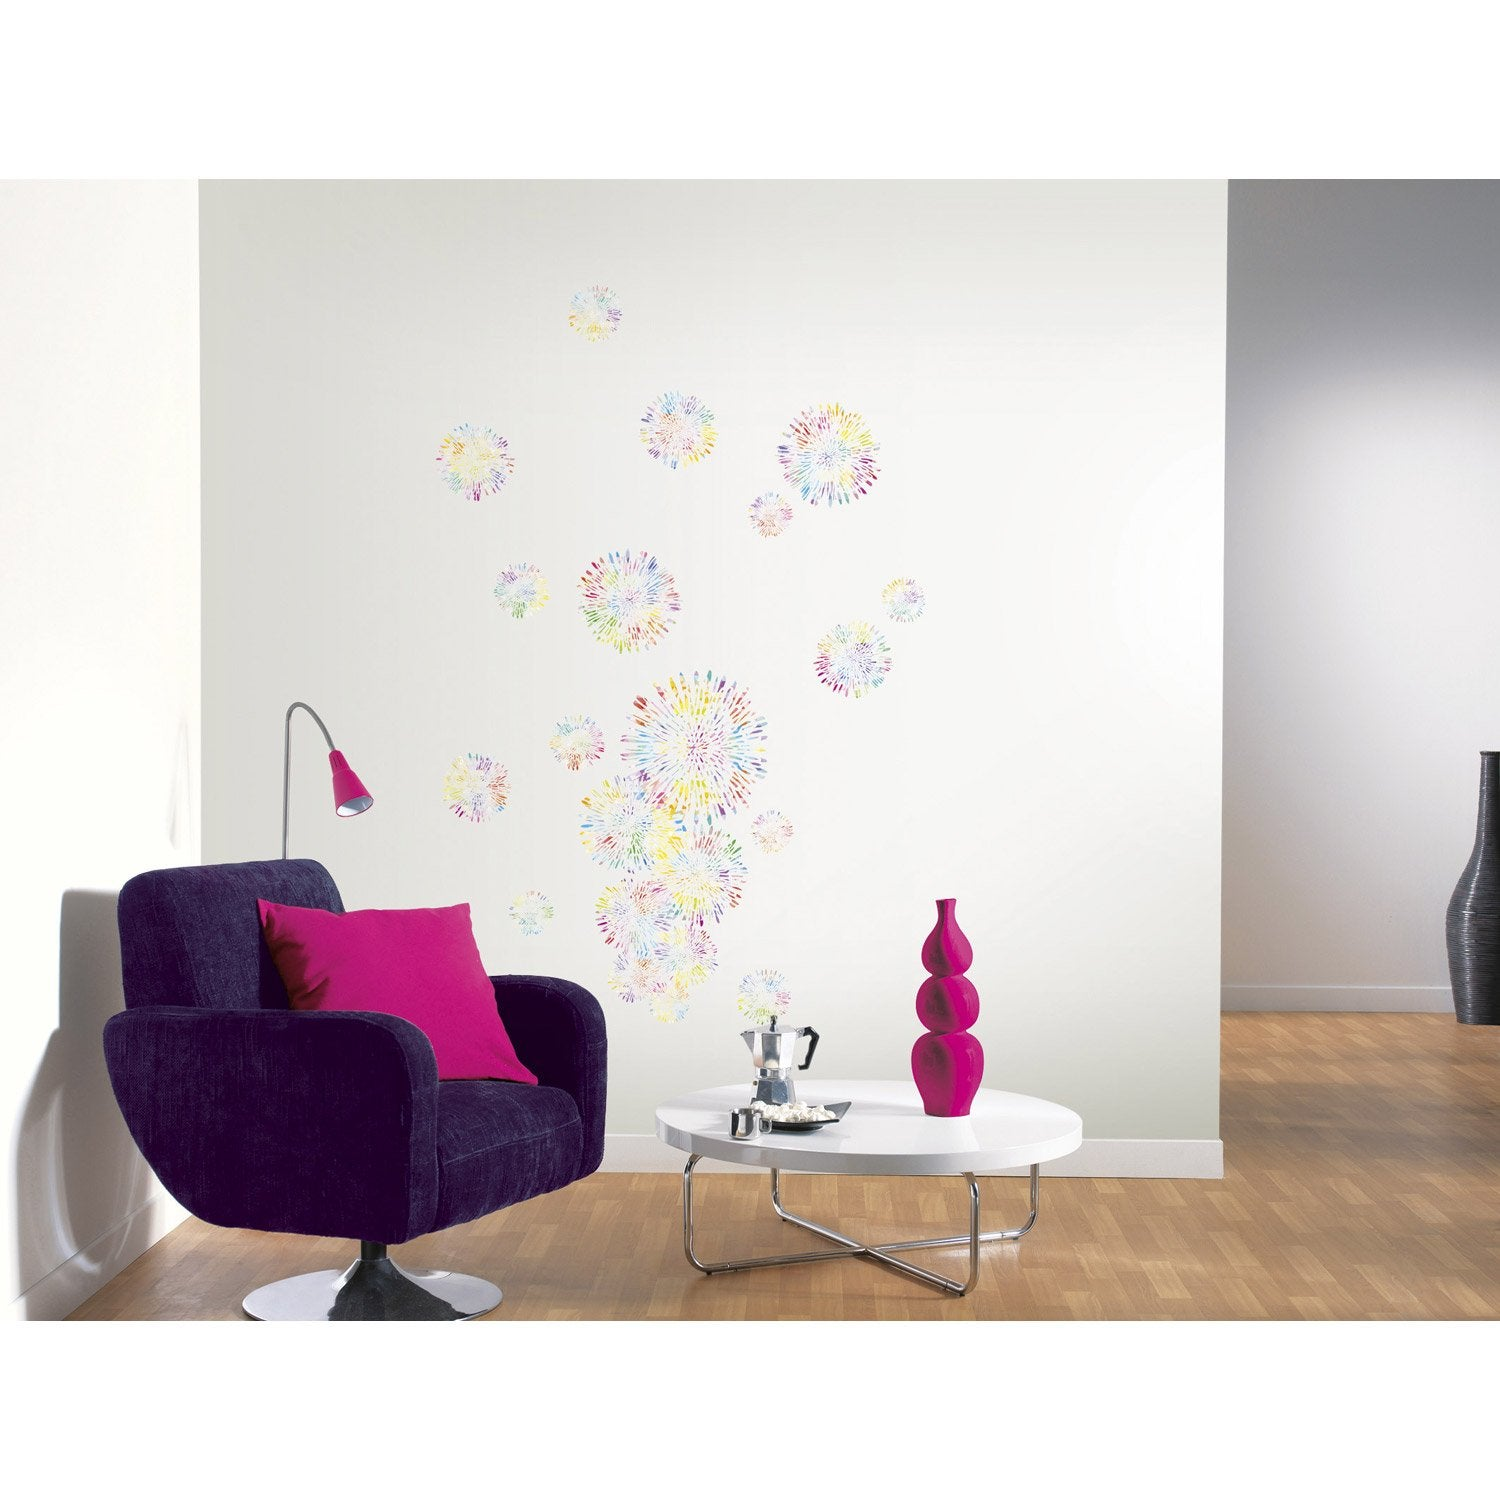 Leroy merlin stickers chambre b b - Leroy merlin stickers ...